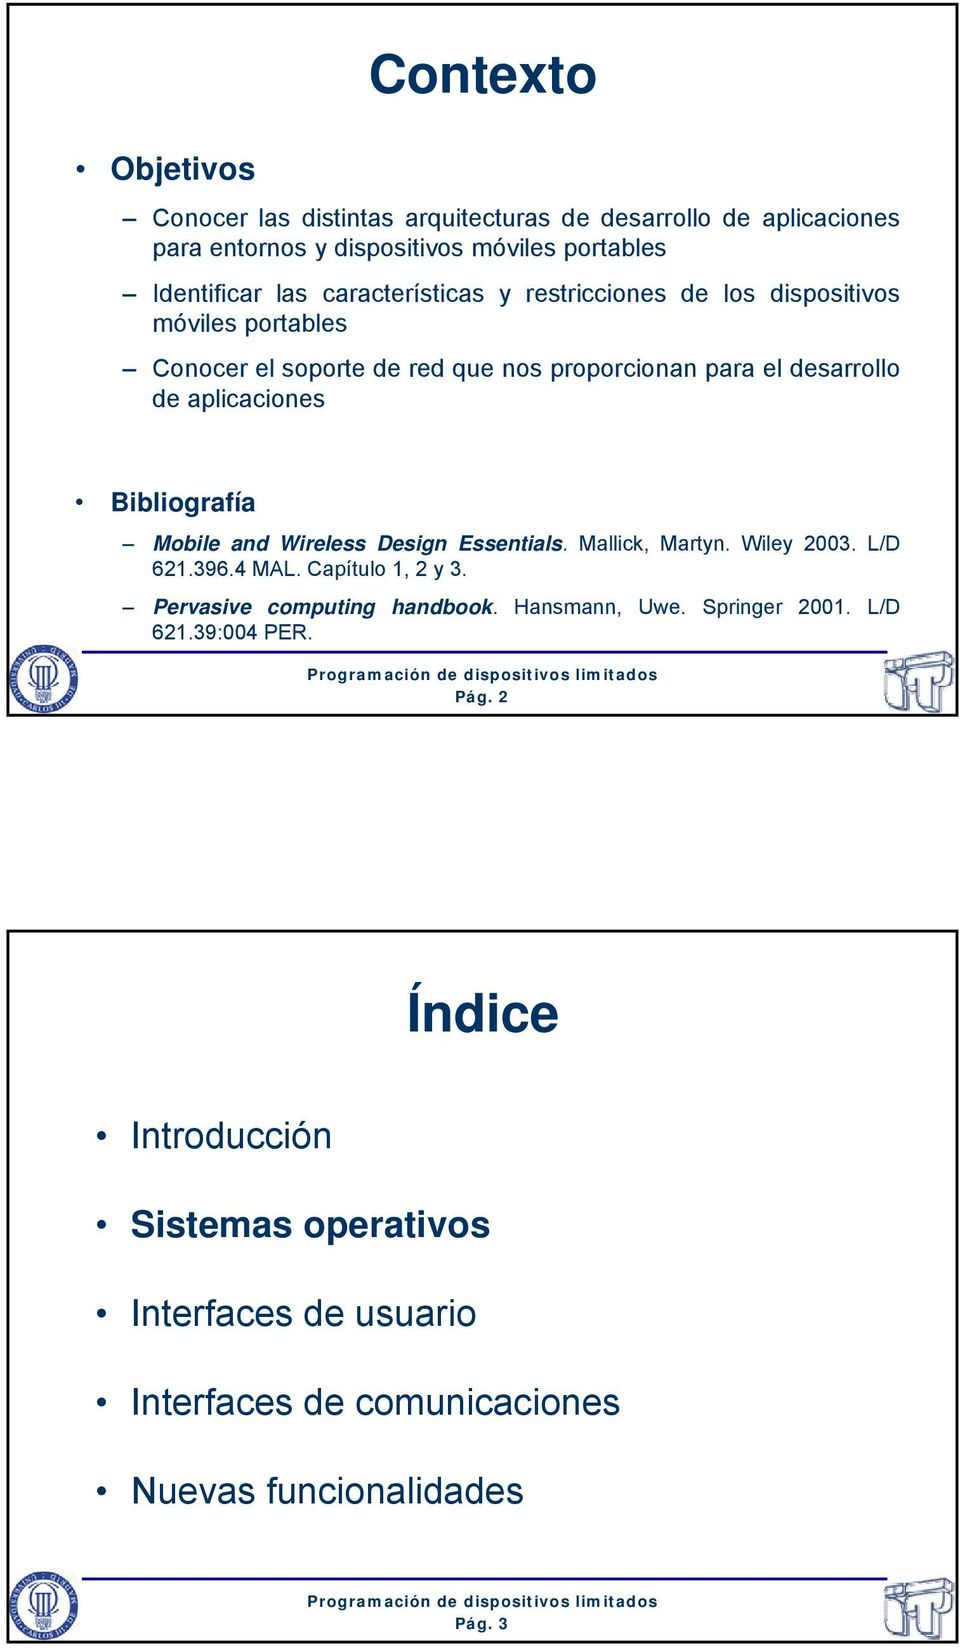 Bibliografía Mobile and Wireless Design Essentials. Mallick, Martyn. Wiley 2003. L/D 621.396.4 MAL. Capítulo 1, 2 y 3. Pervasive computing handbook.